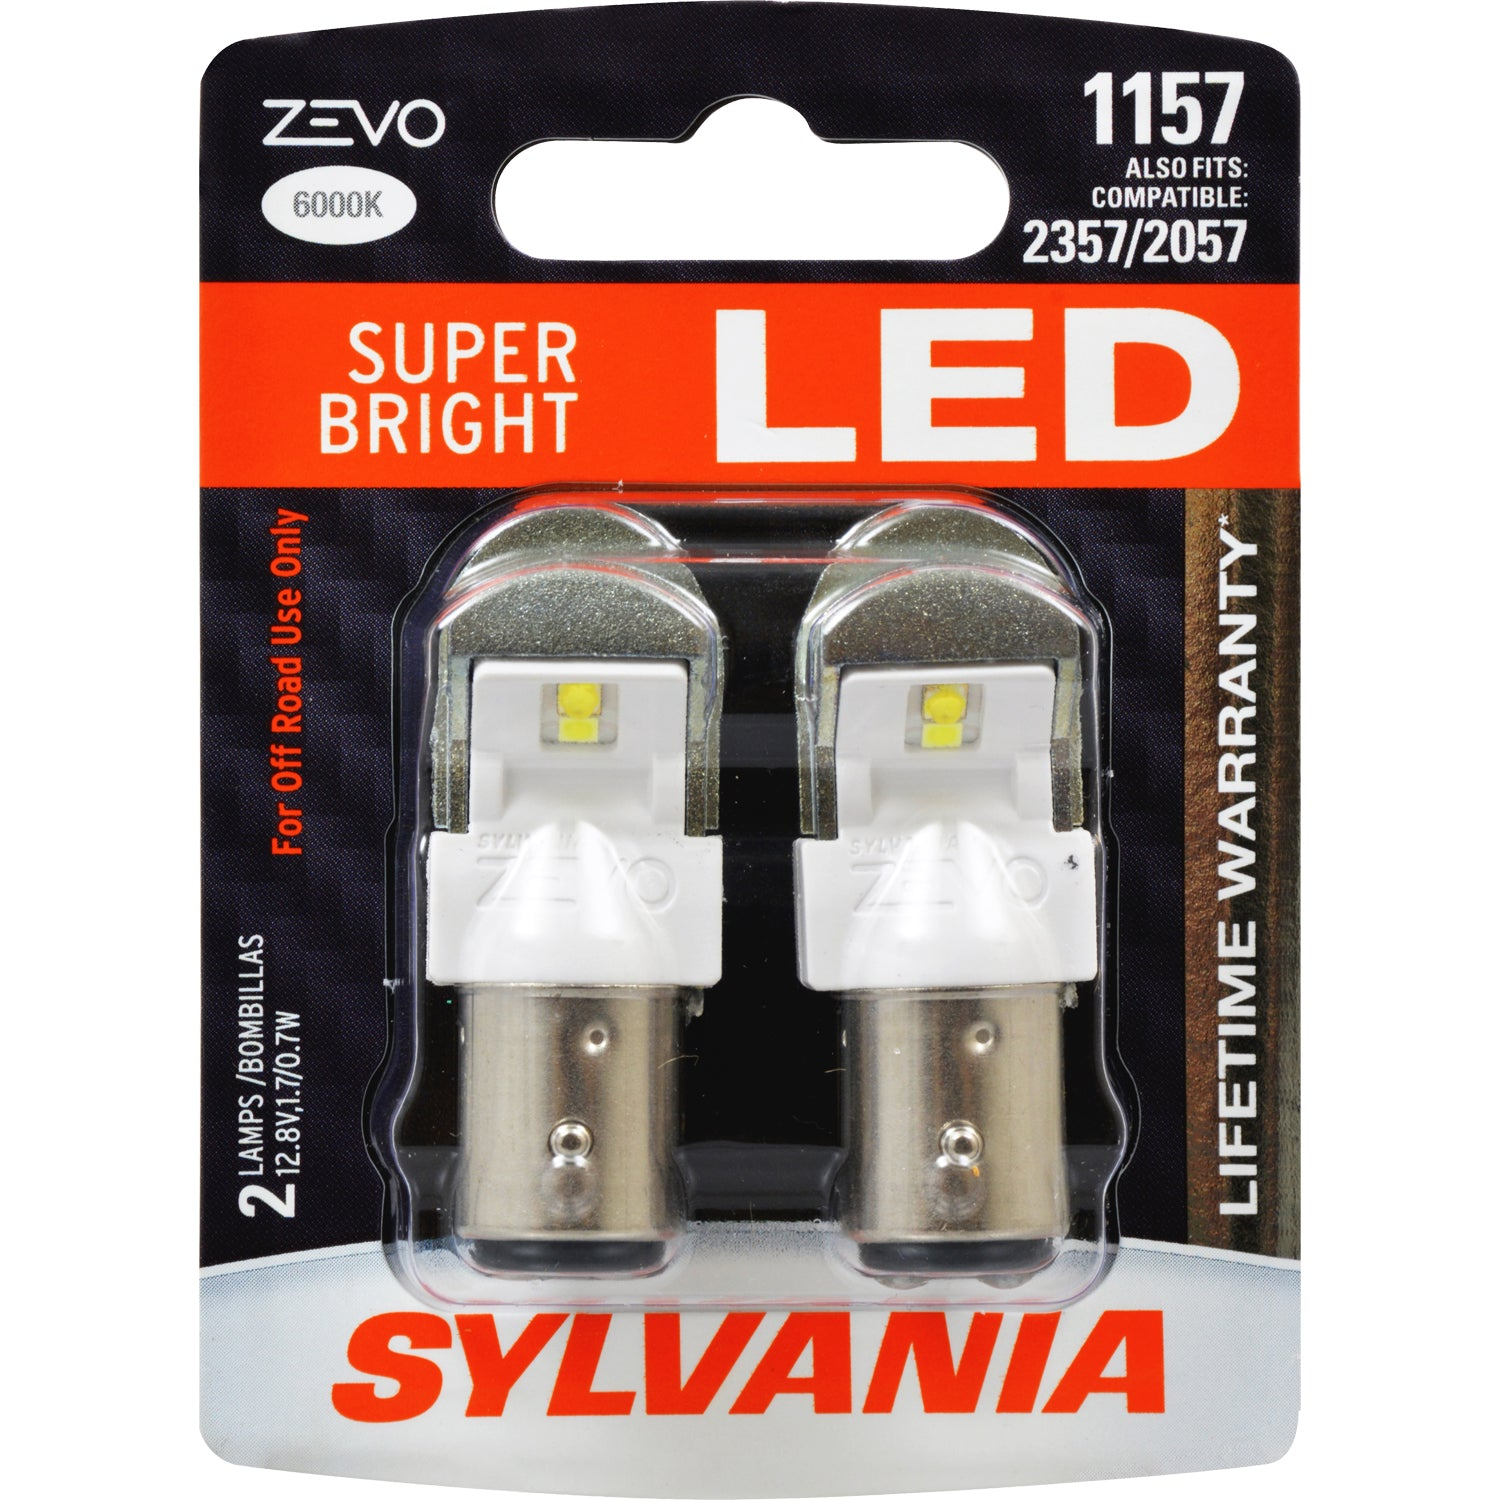 2-PK SYLVANIA 1157 ZEVO LED 6000K Super Bright Automotive Bulb - fits 2357, 2057